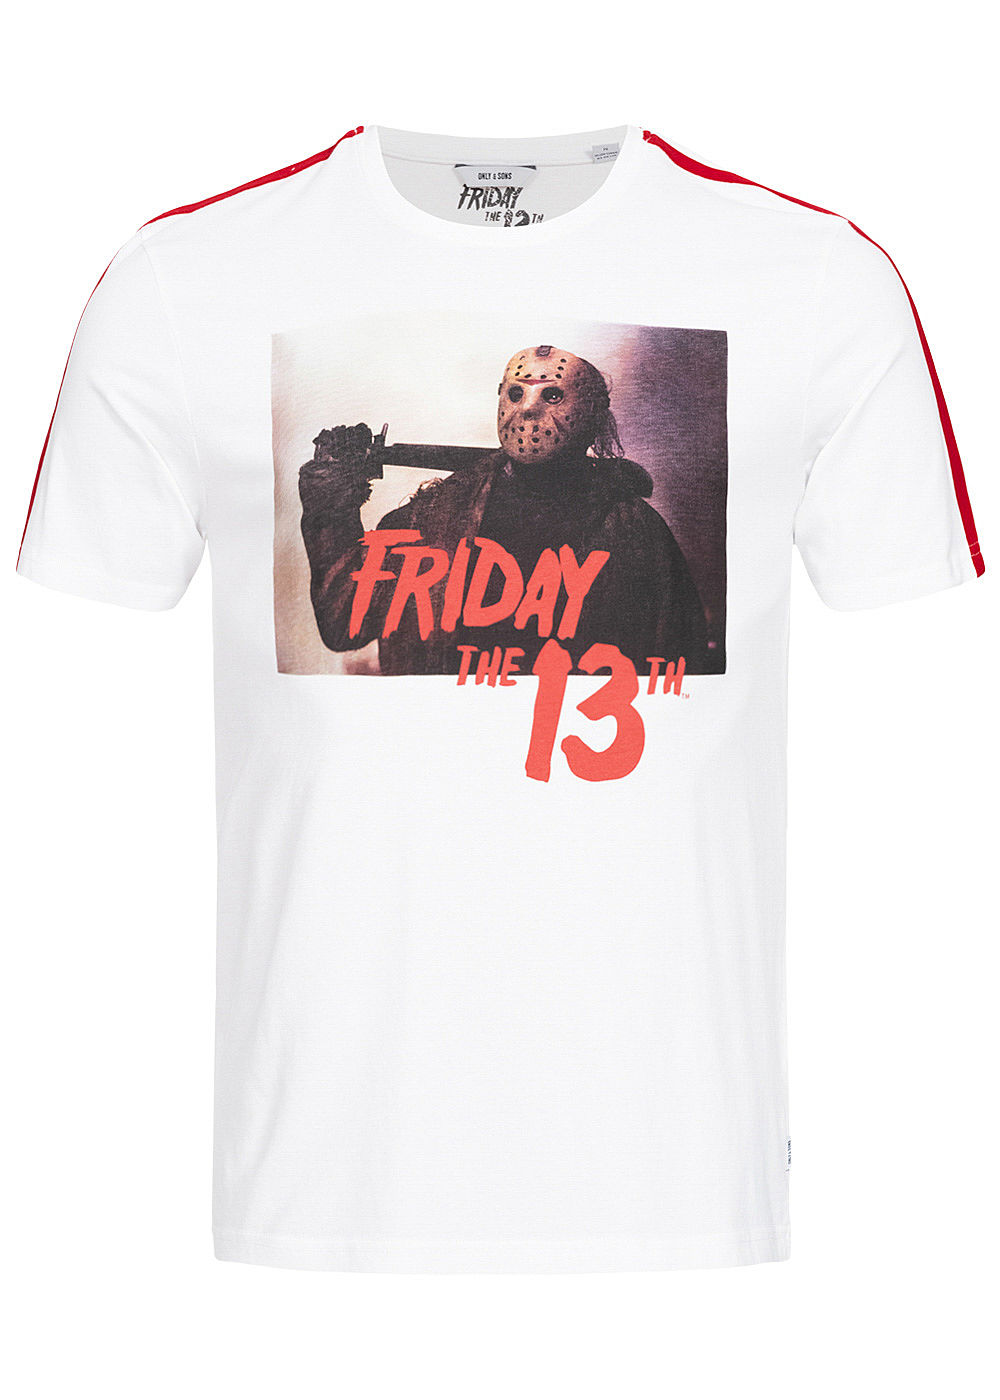 ONLY & SONS Herren T-Shirt Friday the 13th Print weiss - Art.-Nr.: 19104127